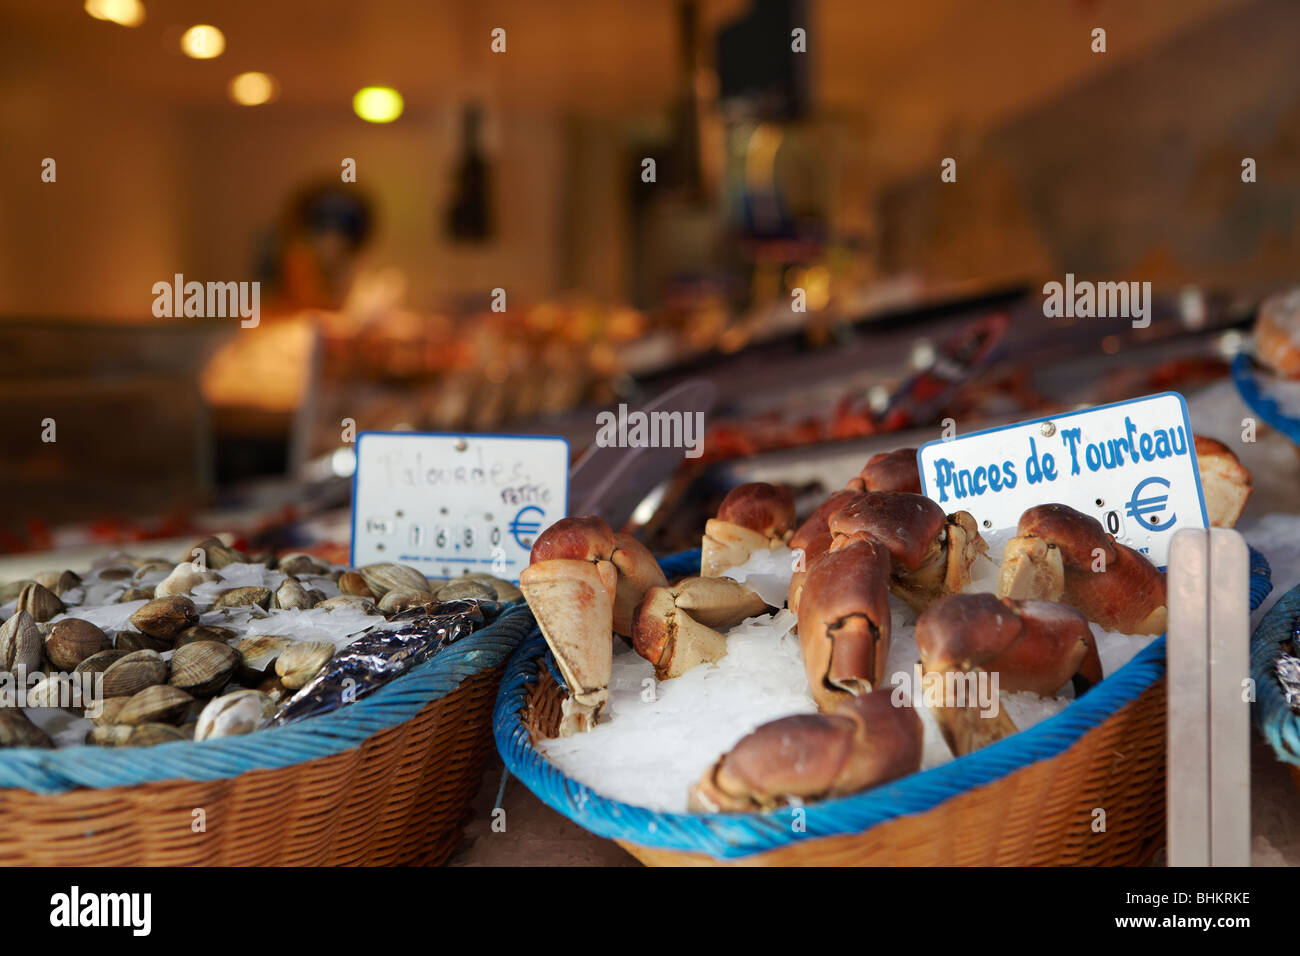 Lobster claws in Rue Mouffetard, Paris, France - Stock Image